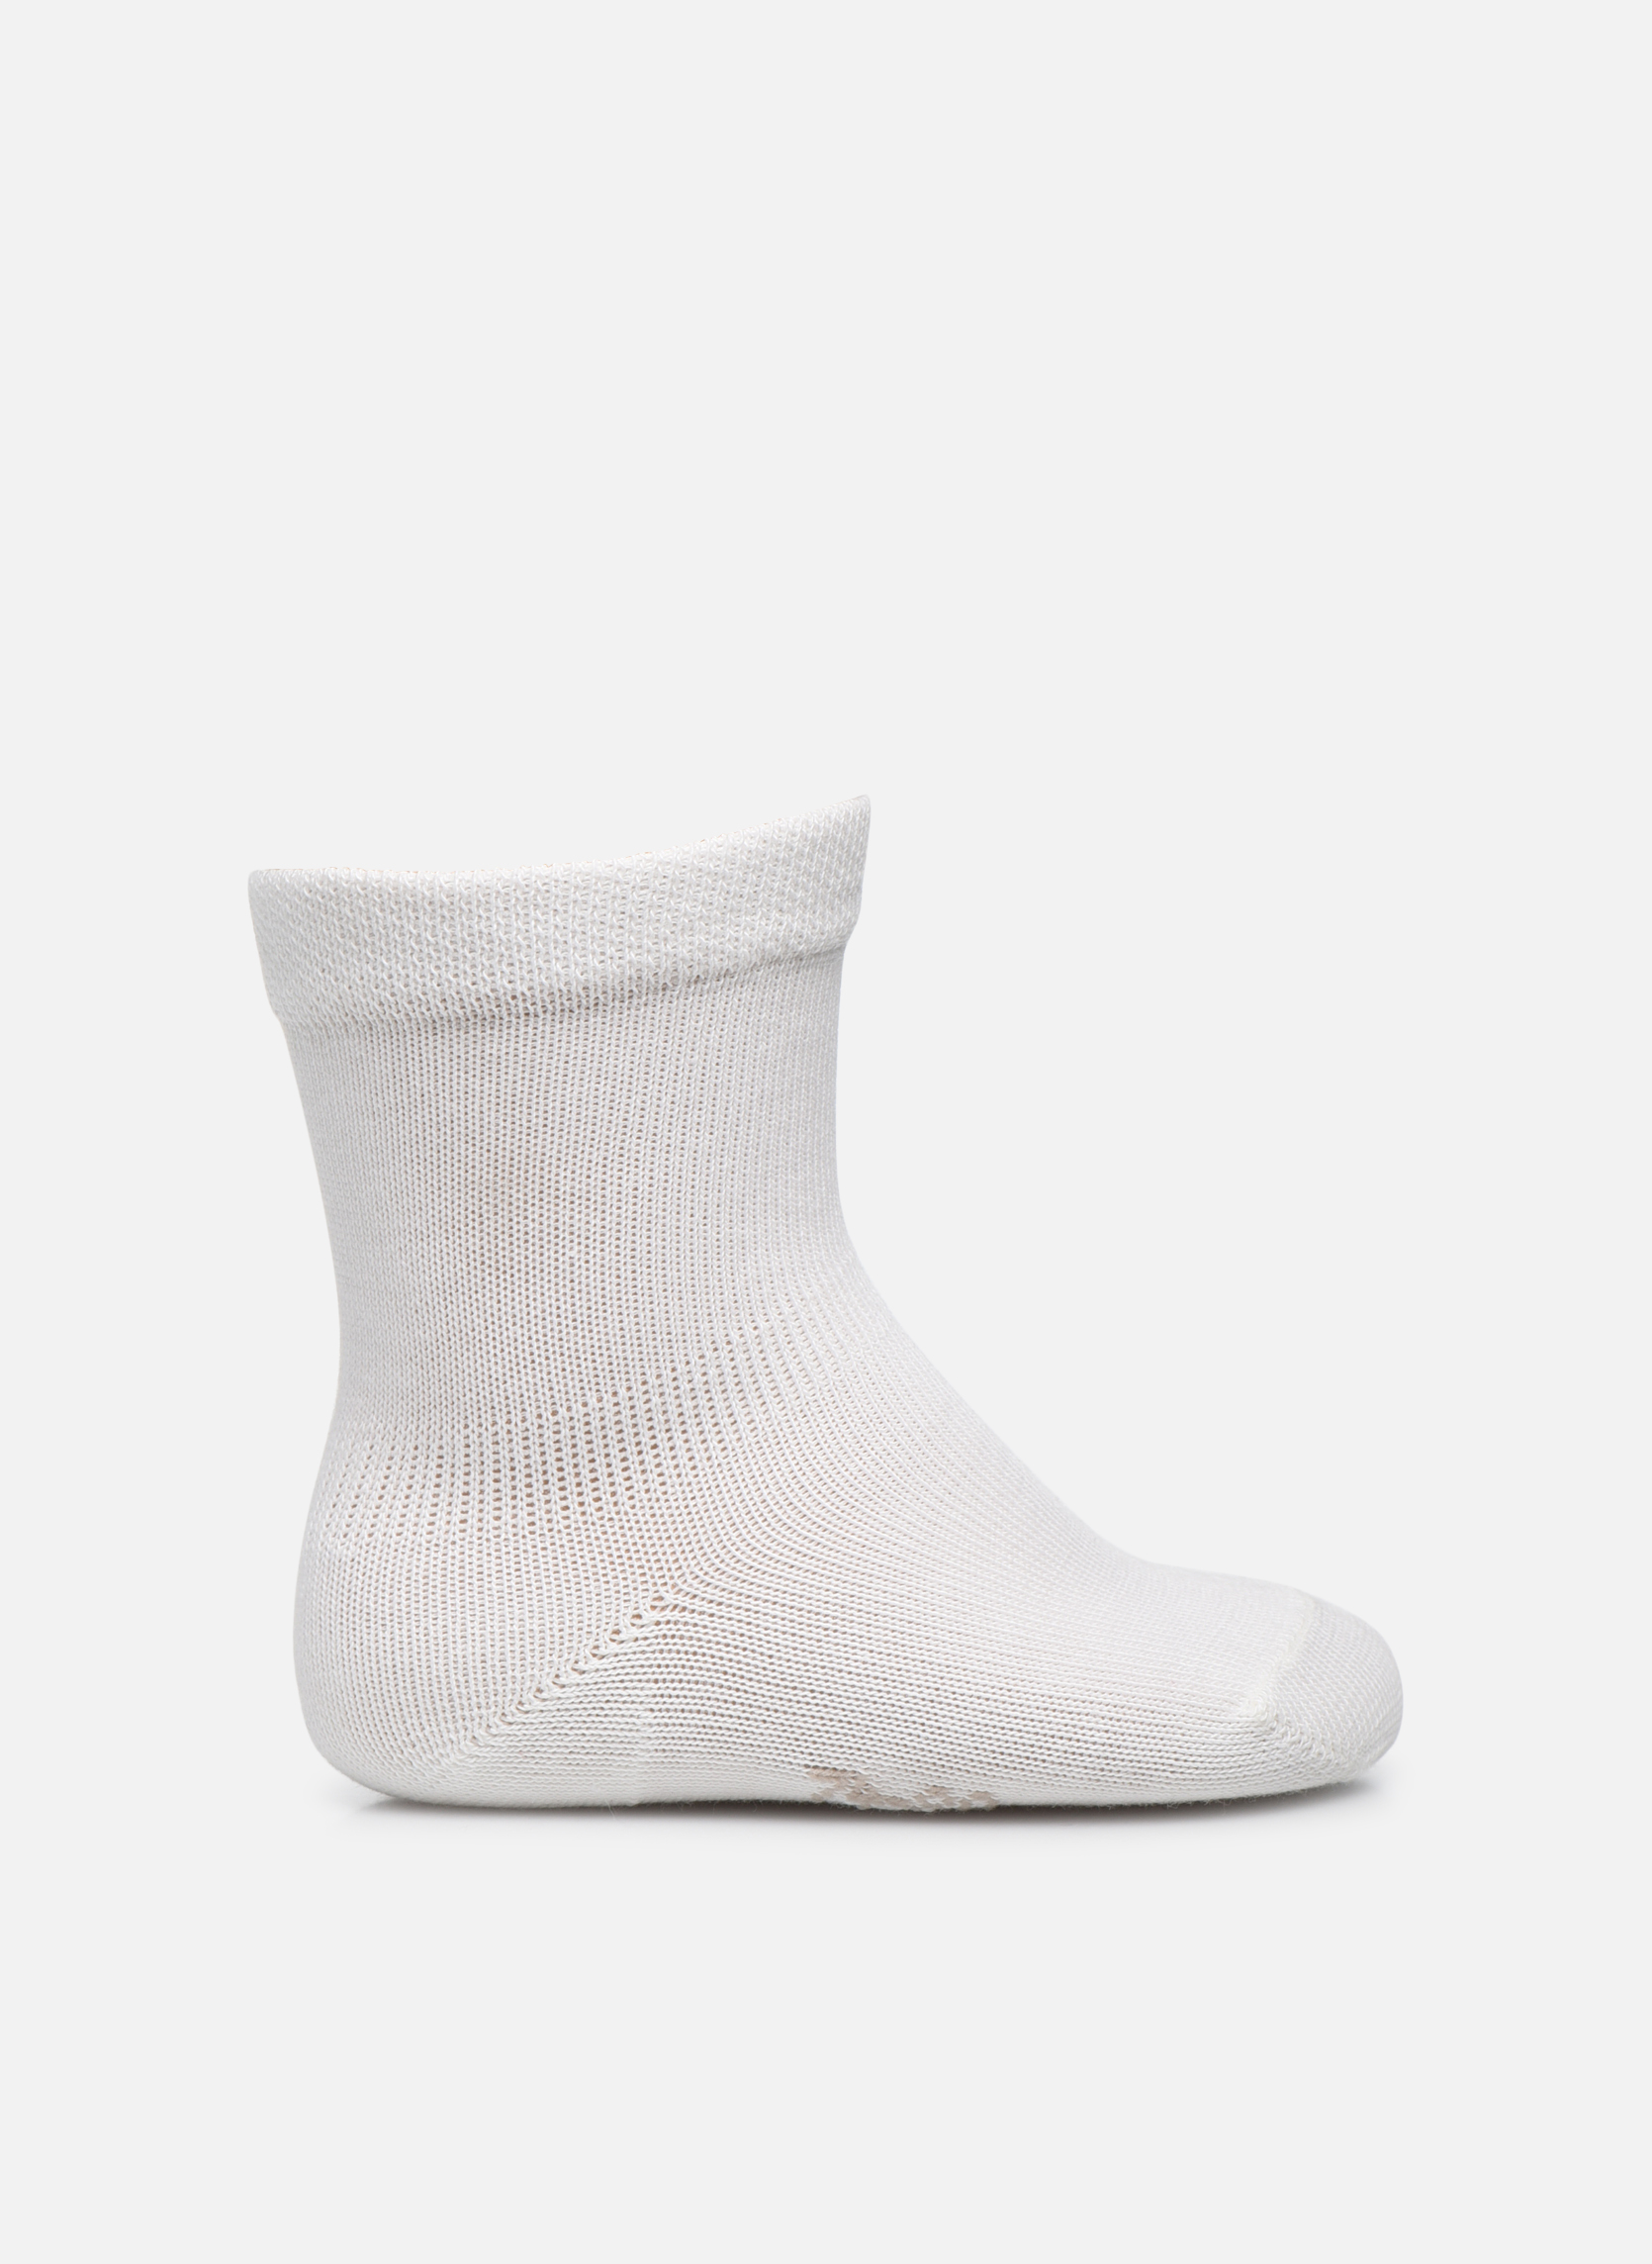 Calcetines SENSITIVE 2040 offwhite